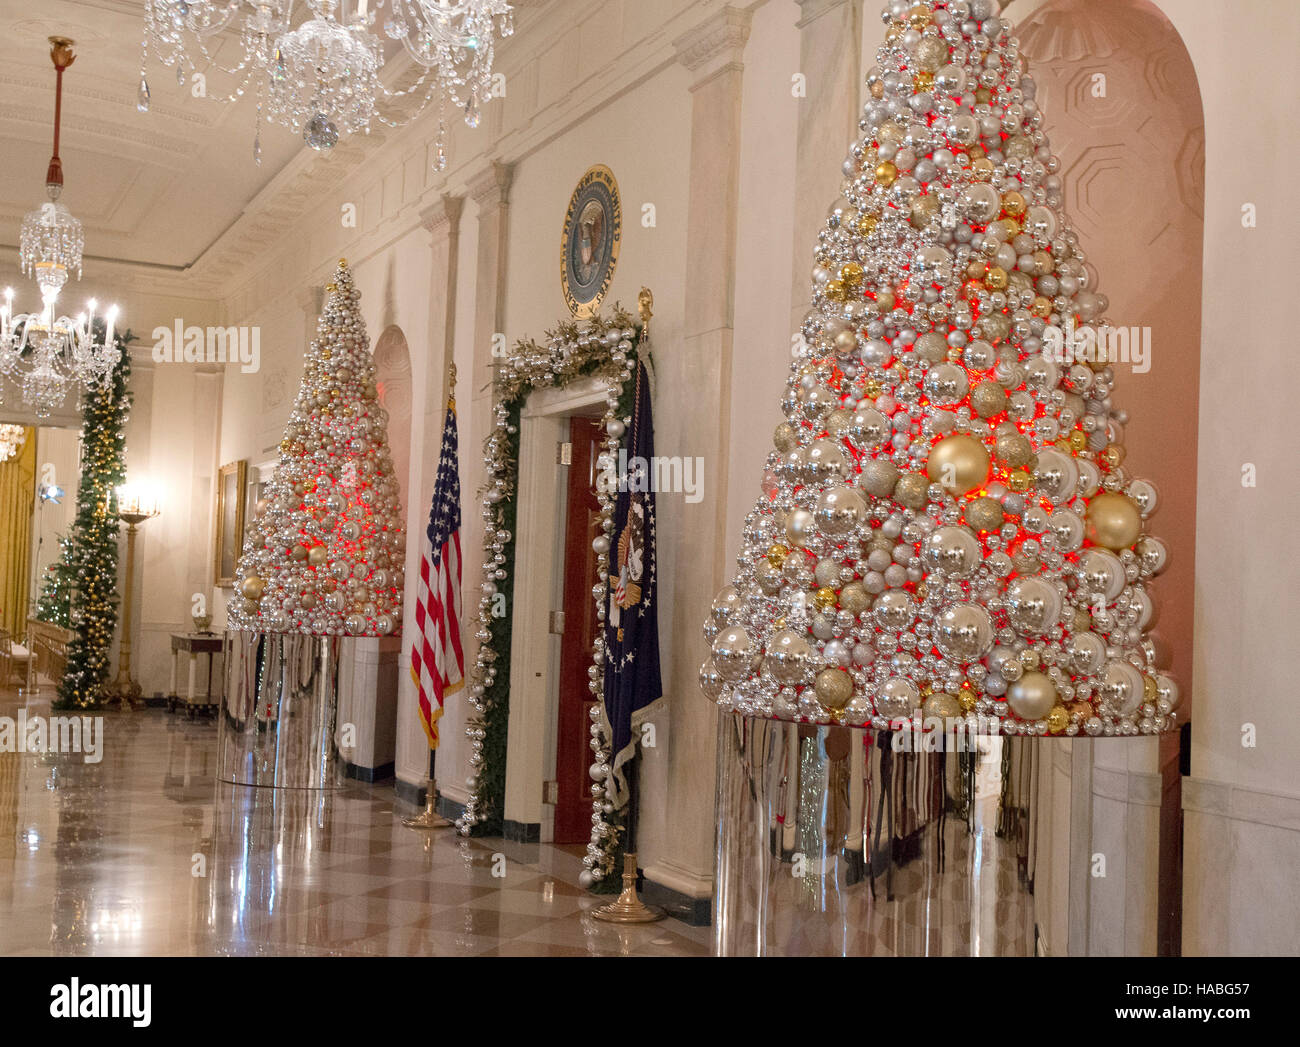 the 2016 white house christmas decorations are previewed for the press at the white house in - White House Christmas Decorations 2016